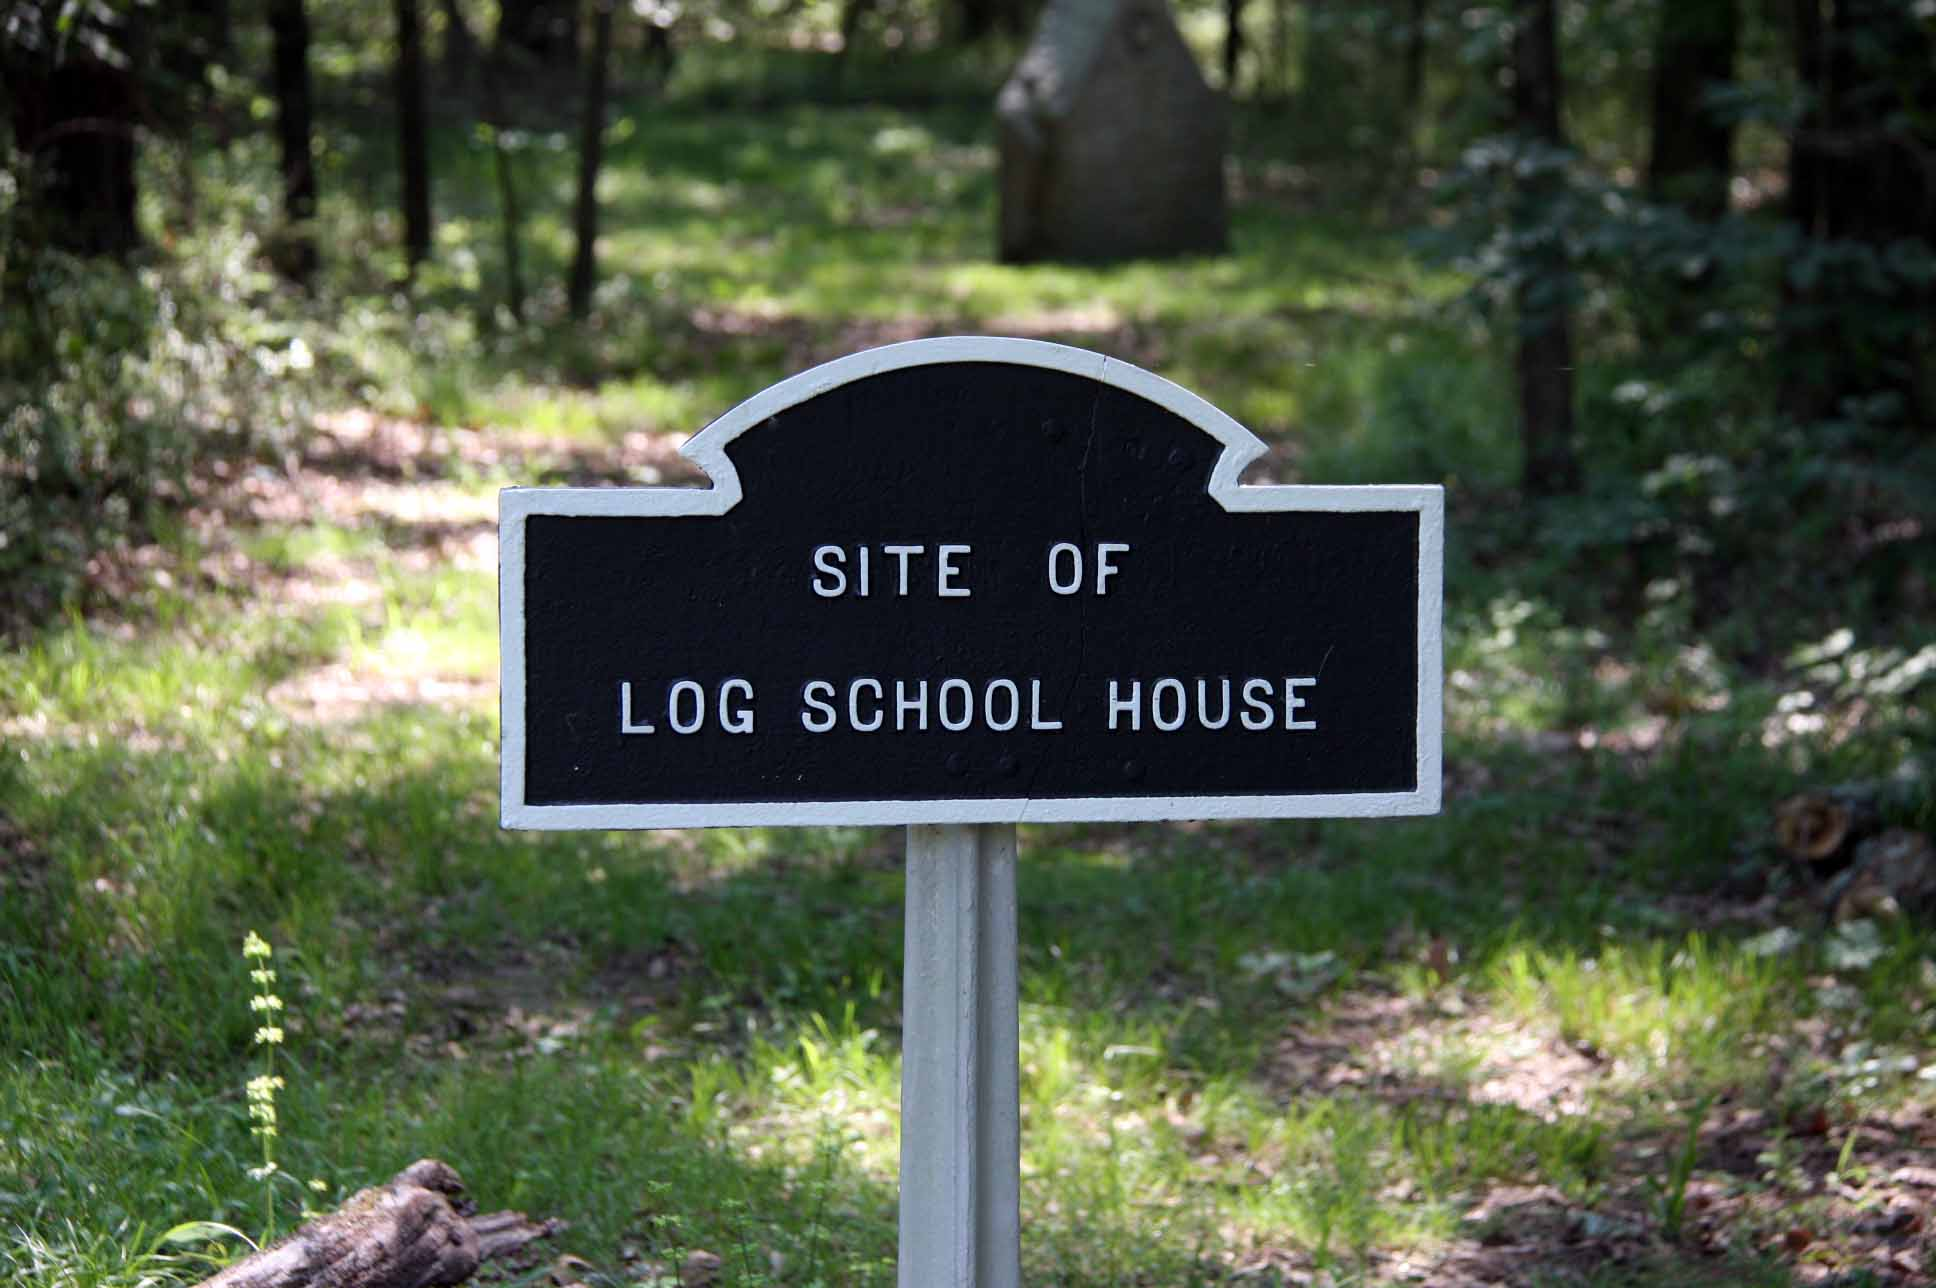 Site of Log School House, click photo to enlarge.